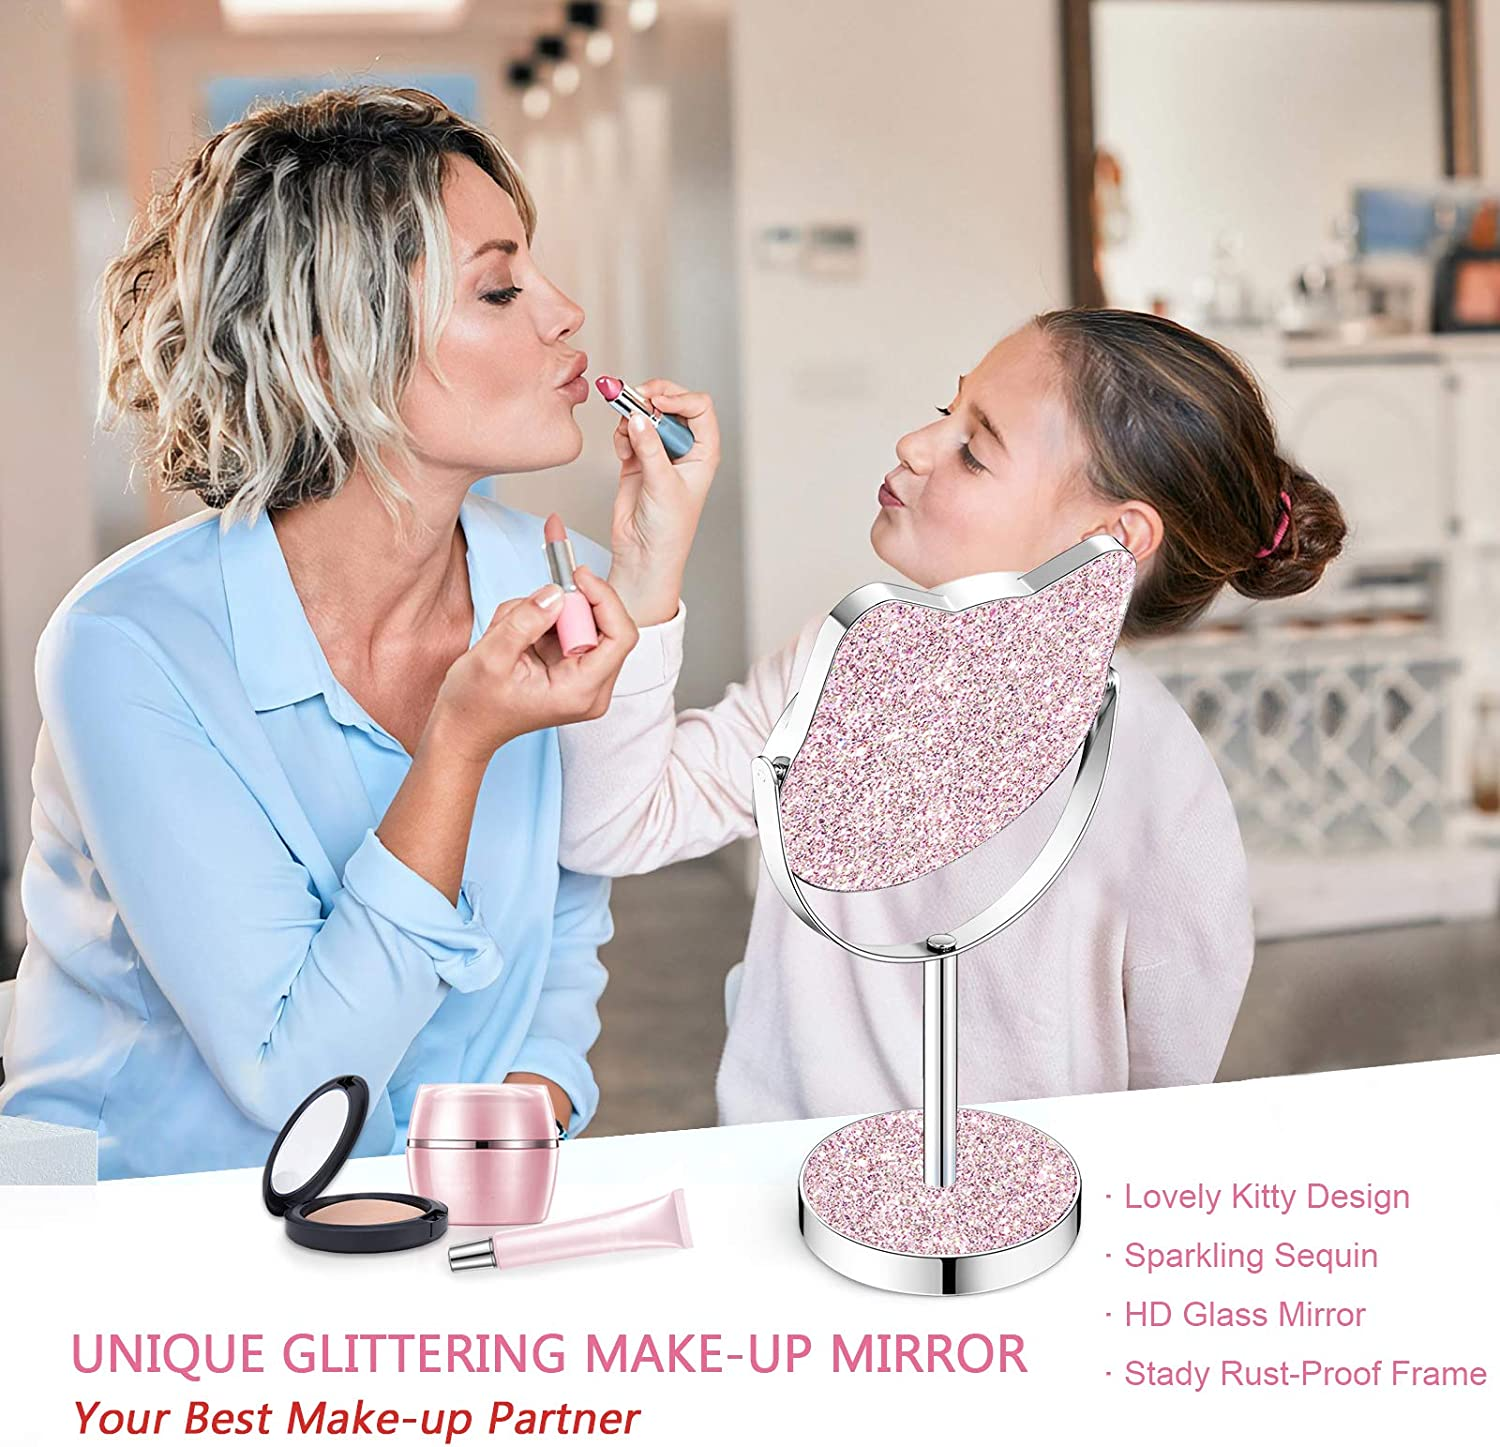 High Definition Dressing Table Mirror Glittering Sequins Bedroom Desk Mirrors Valentines Galentine/'s Day Gifts for Girls Derui Creation Makeup Mirror for Women